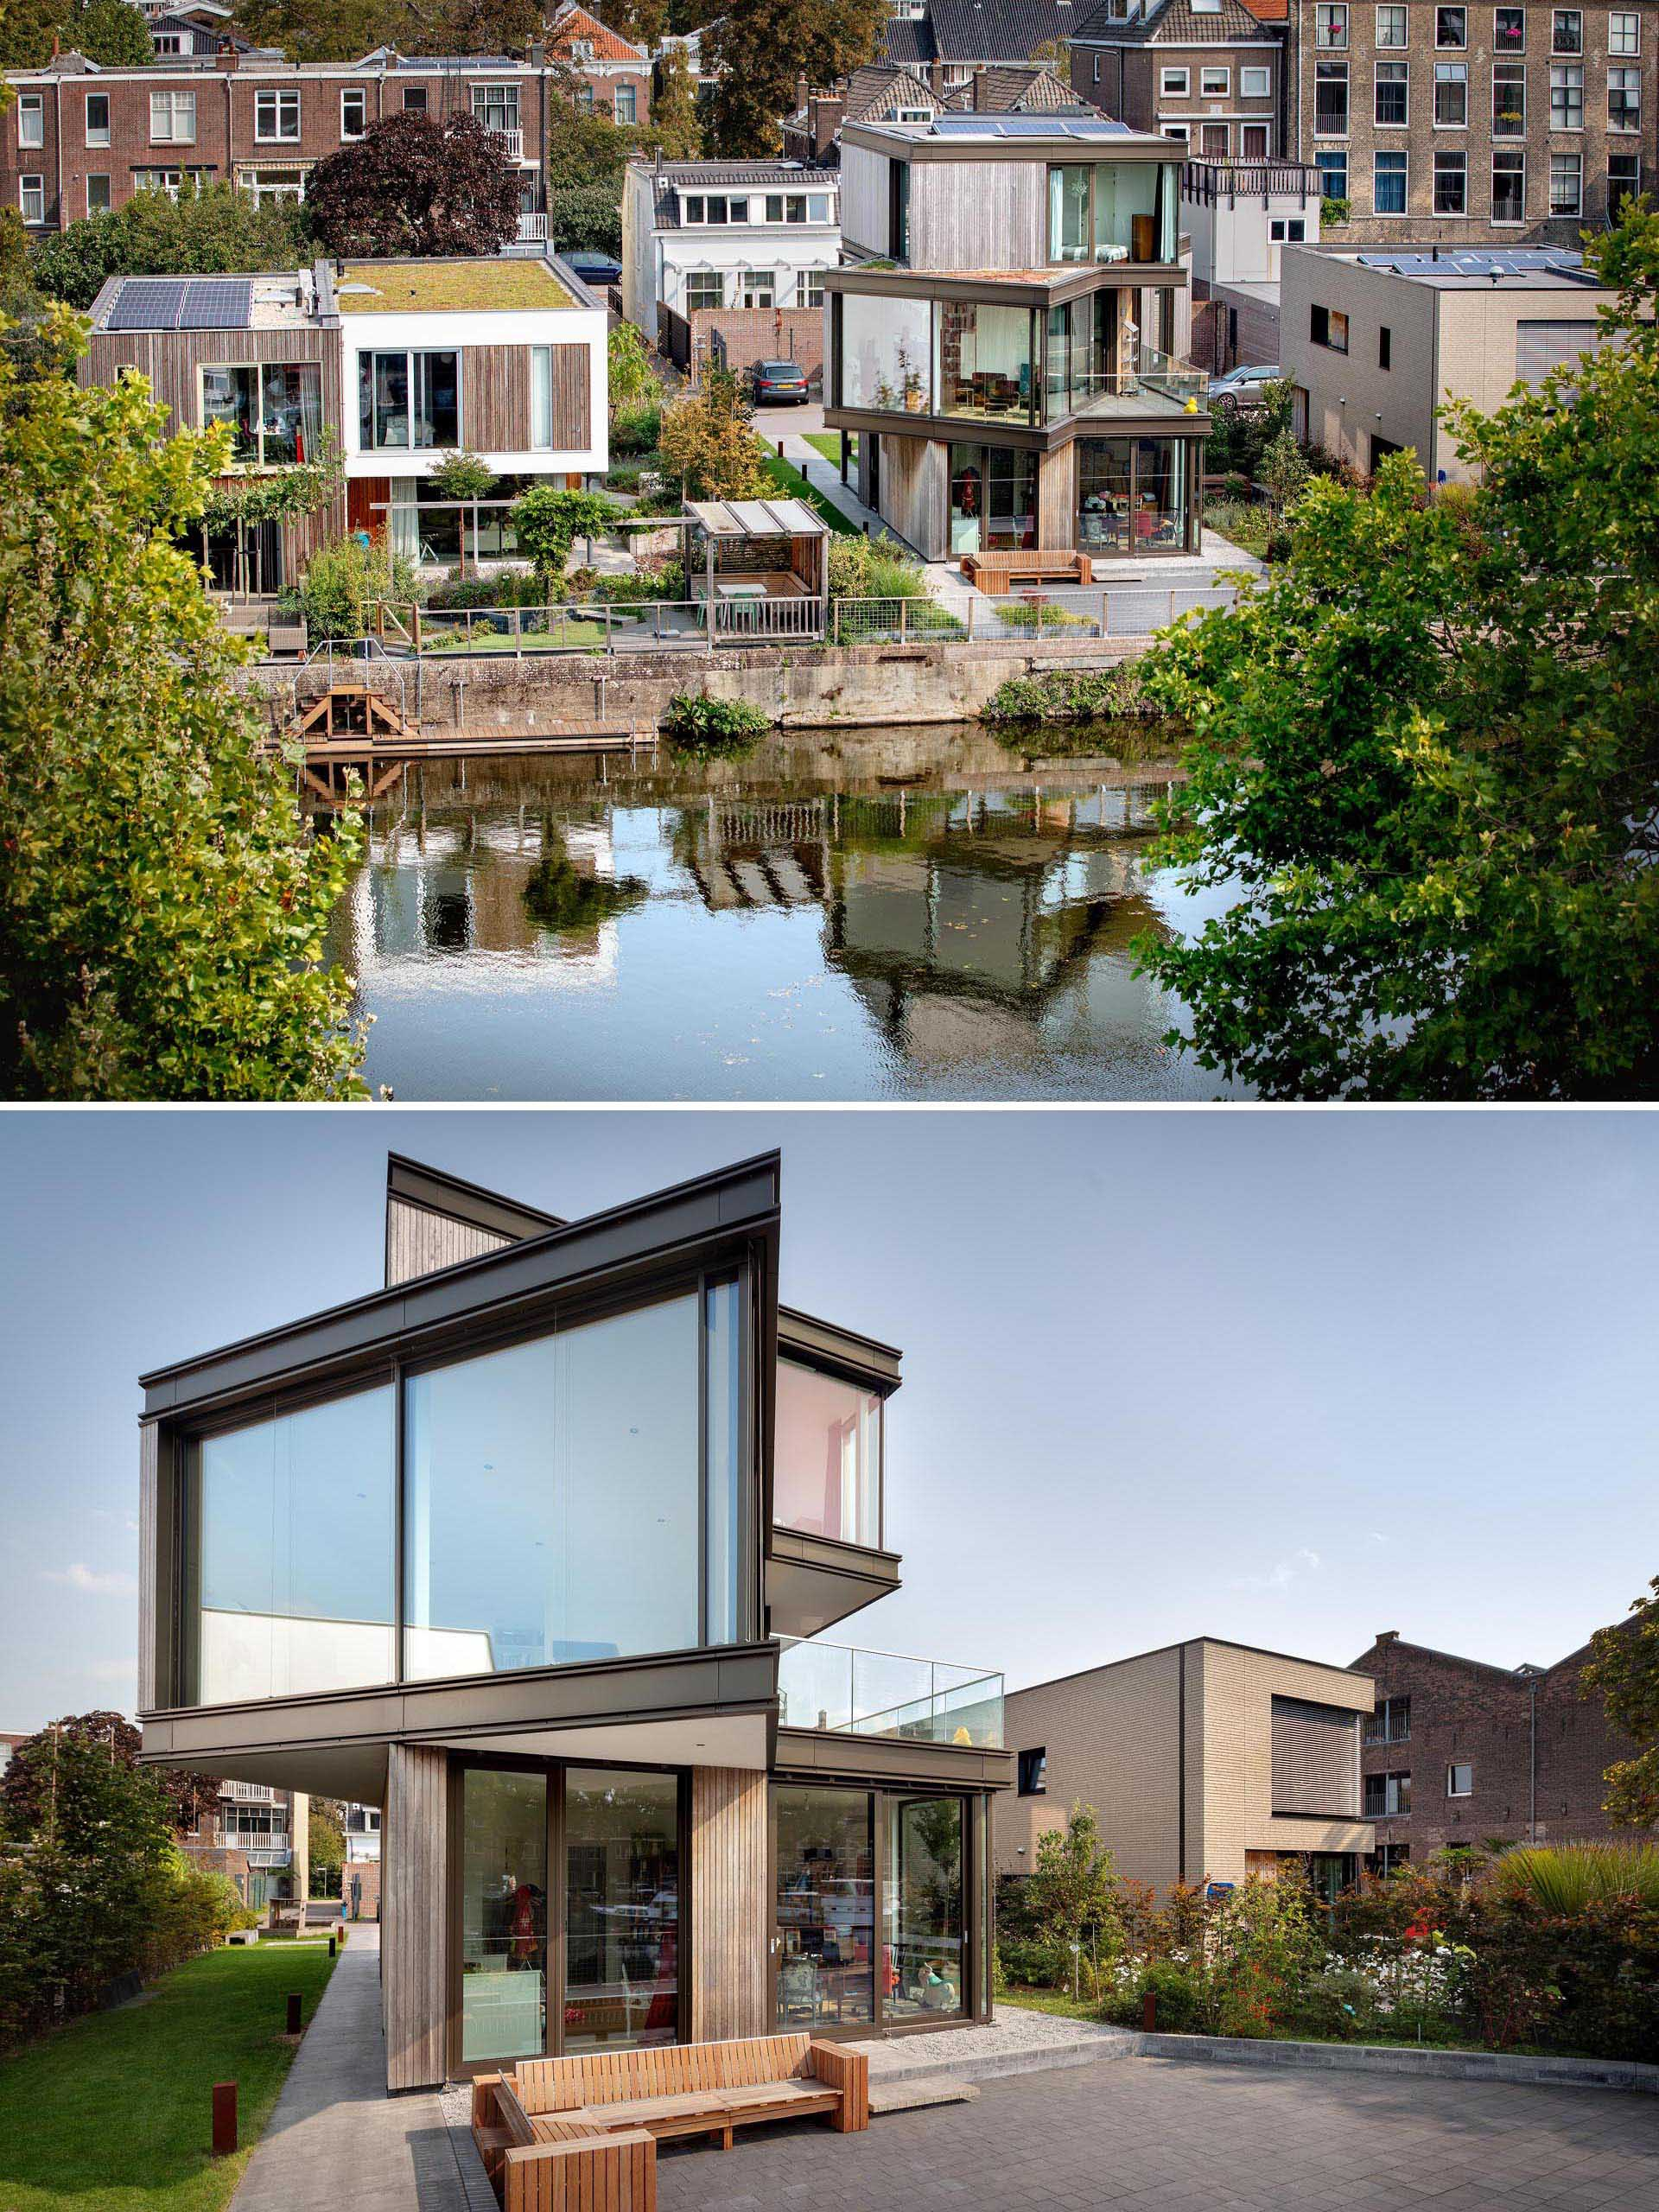 A modern house with an angled middle floor.